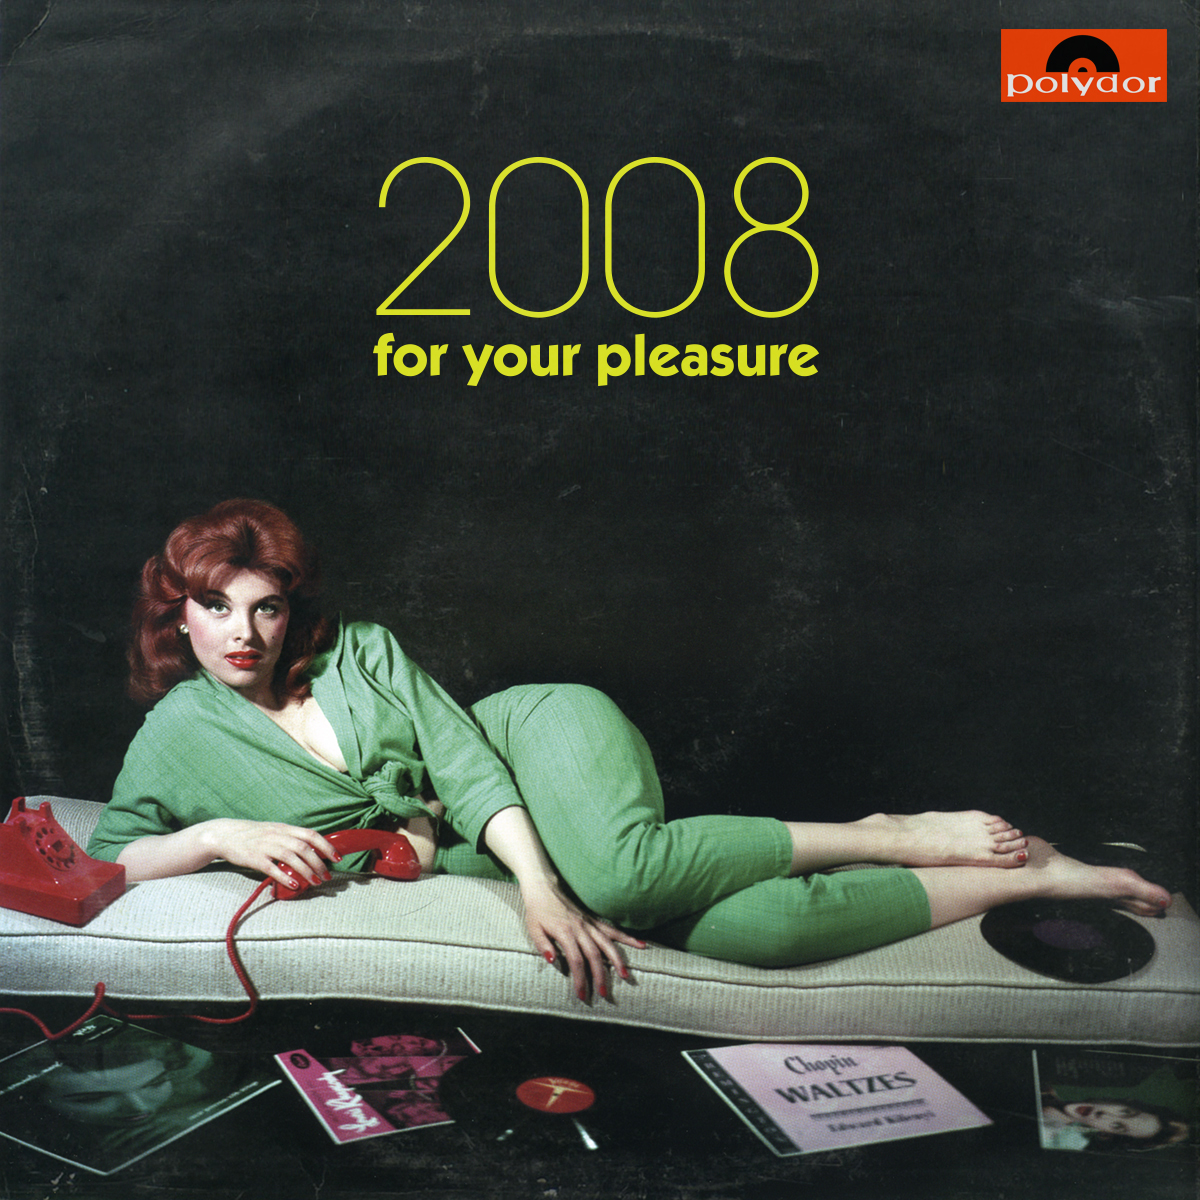 For_Your_Pleasure_2008_Front